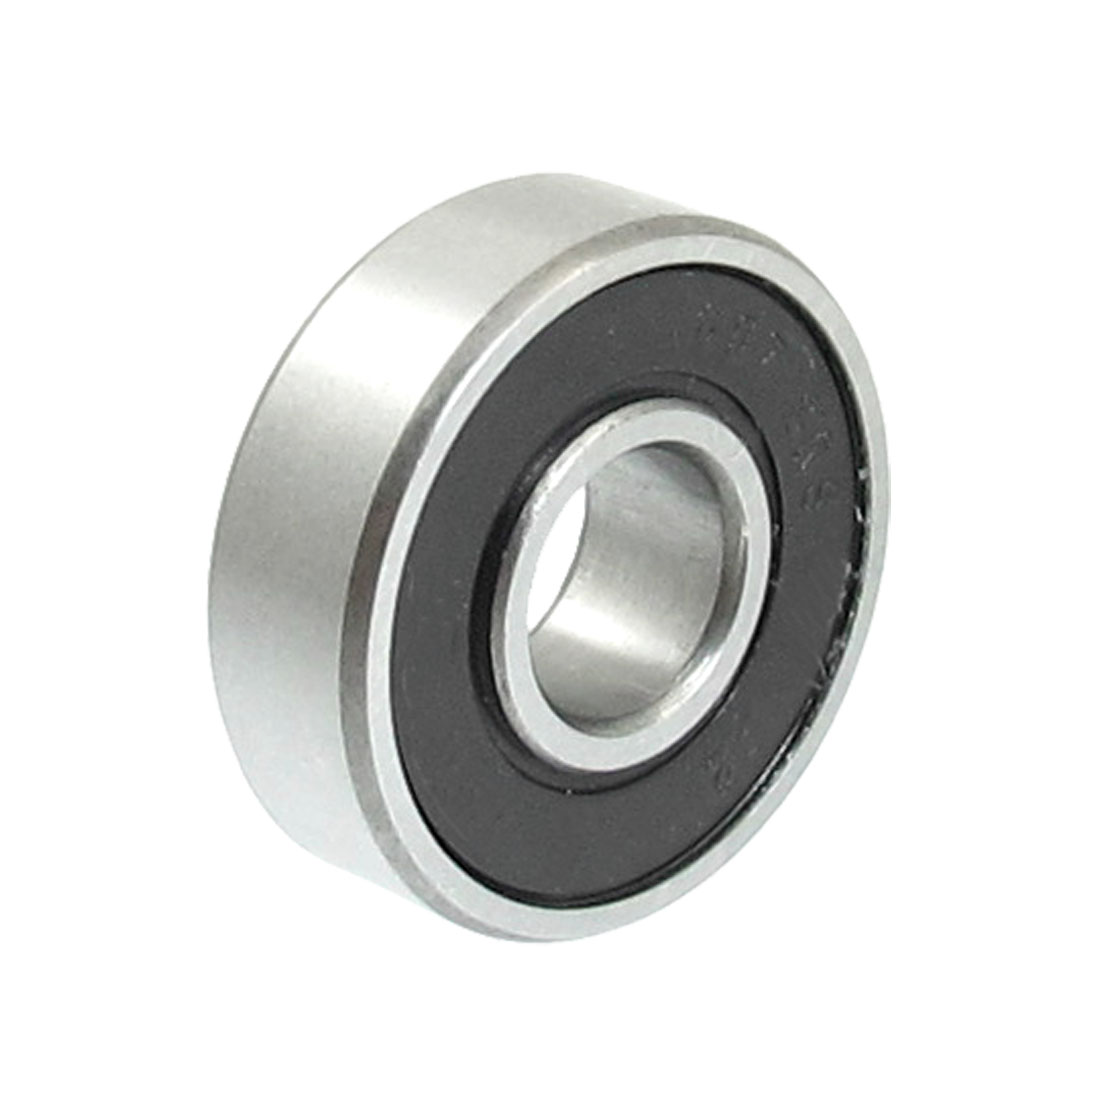 Electric Power 7mm x 19m x 6mm Shielded Deep Groove Ball Bearing